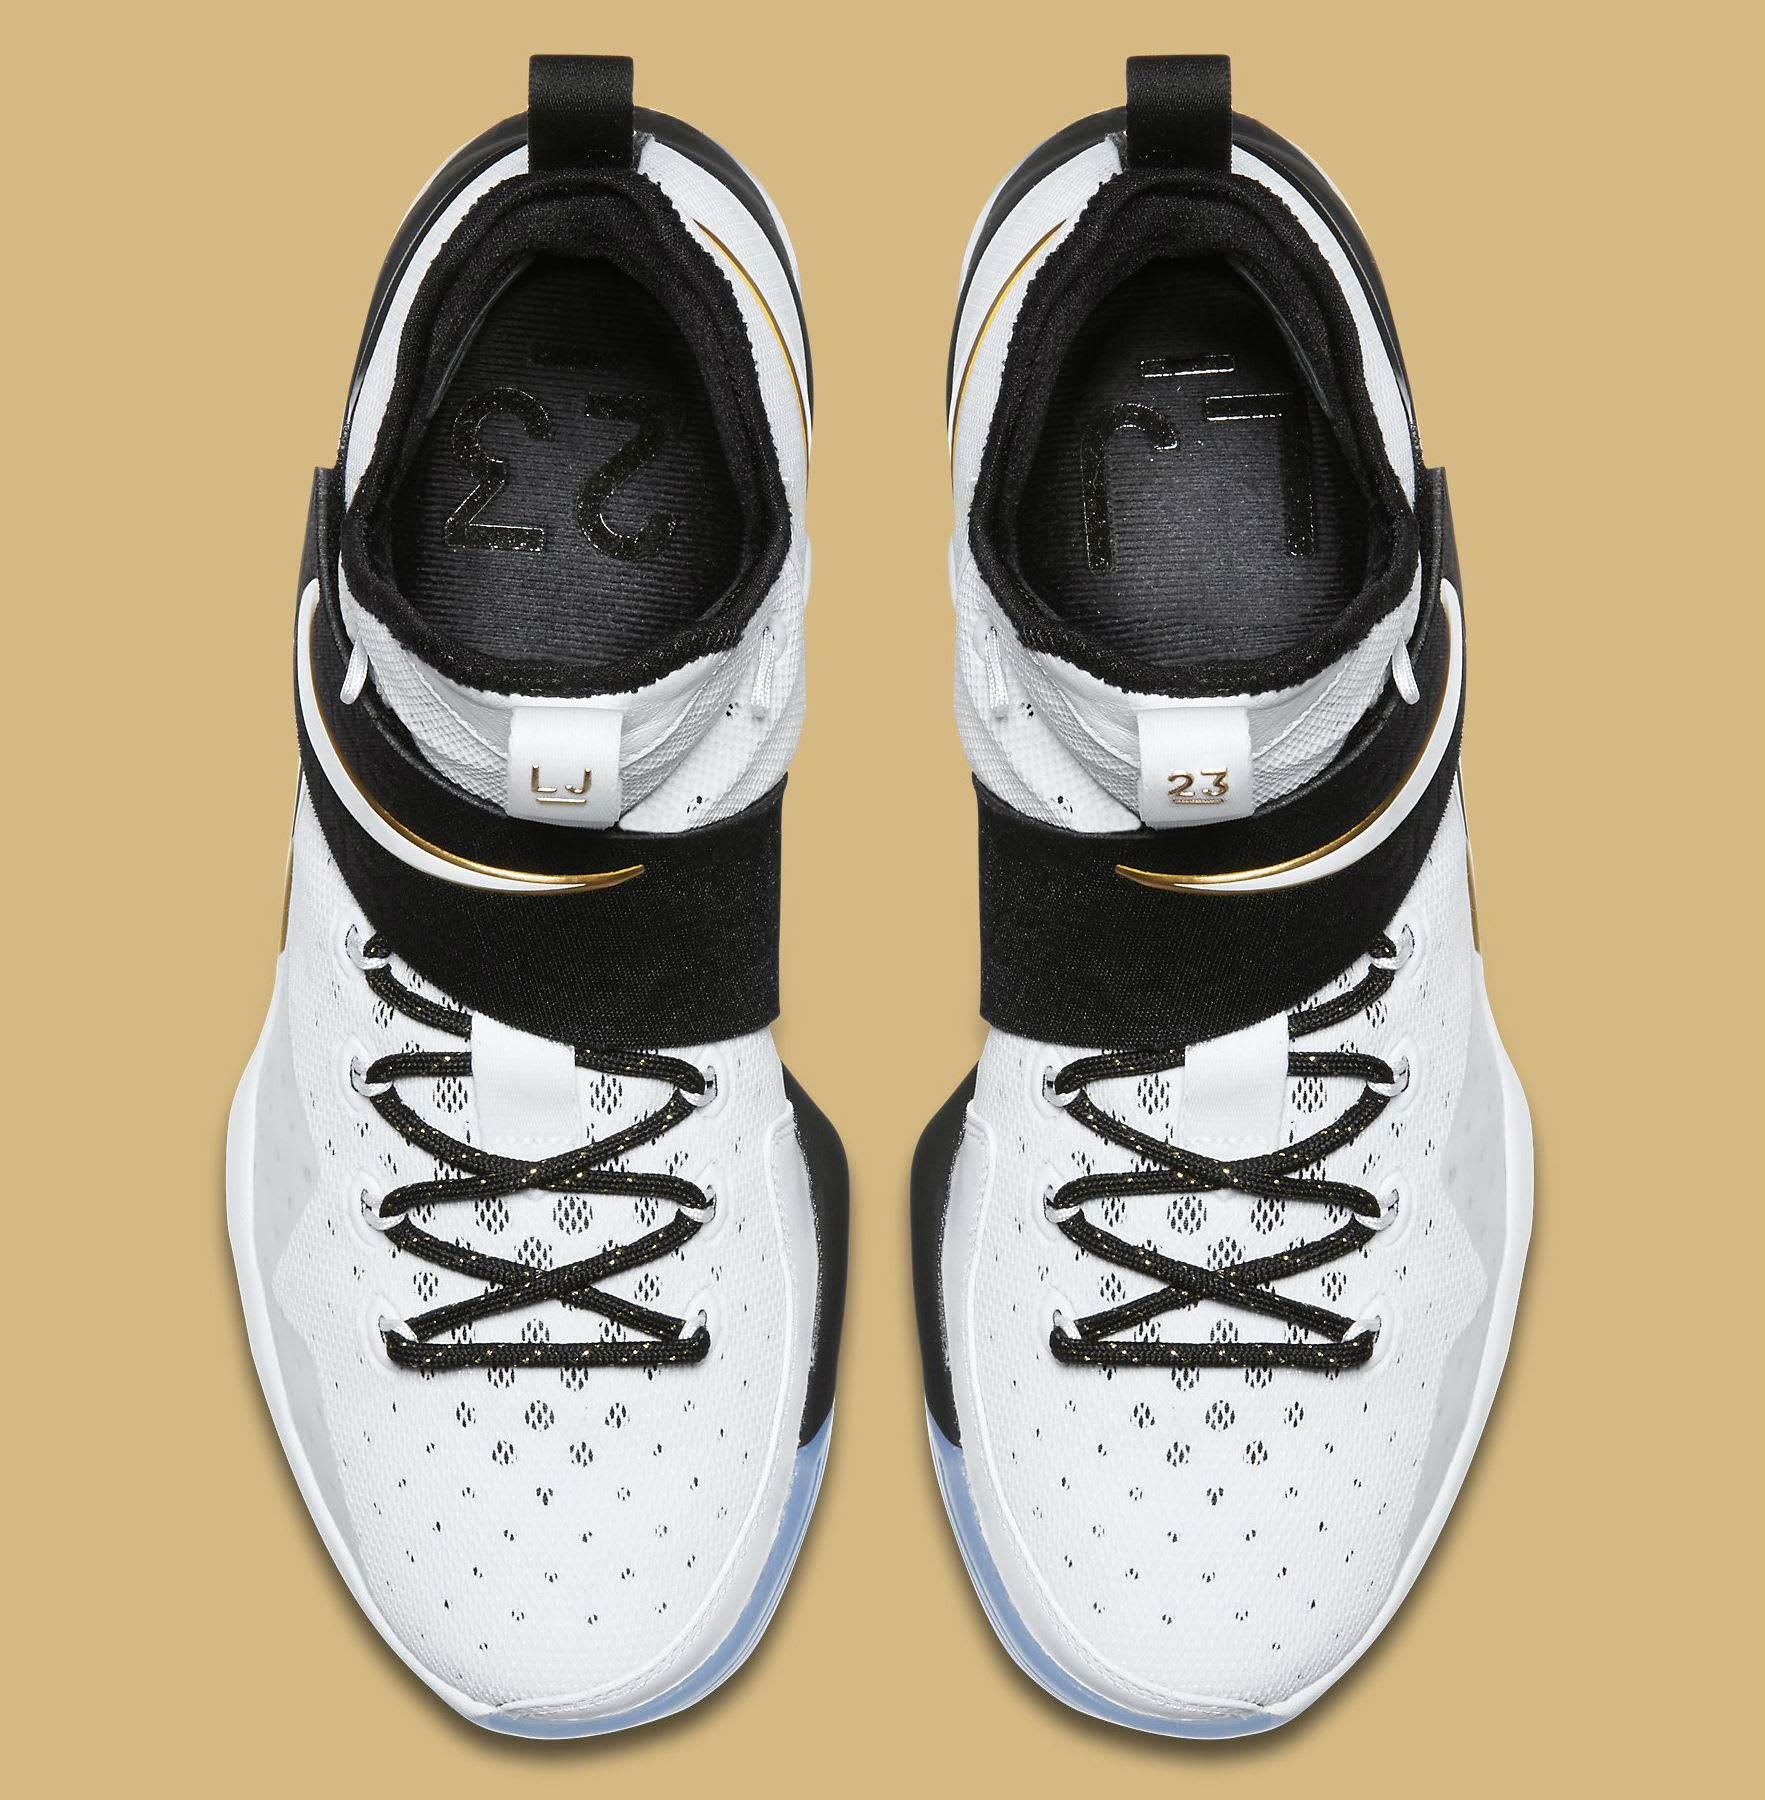 5826f97fcc15 ... where to buy nike lebron 14 bhm release date top 860634 100 a10c7 28fcb